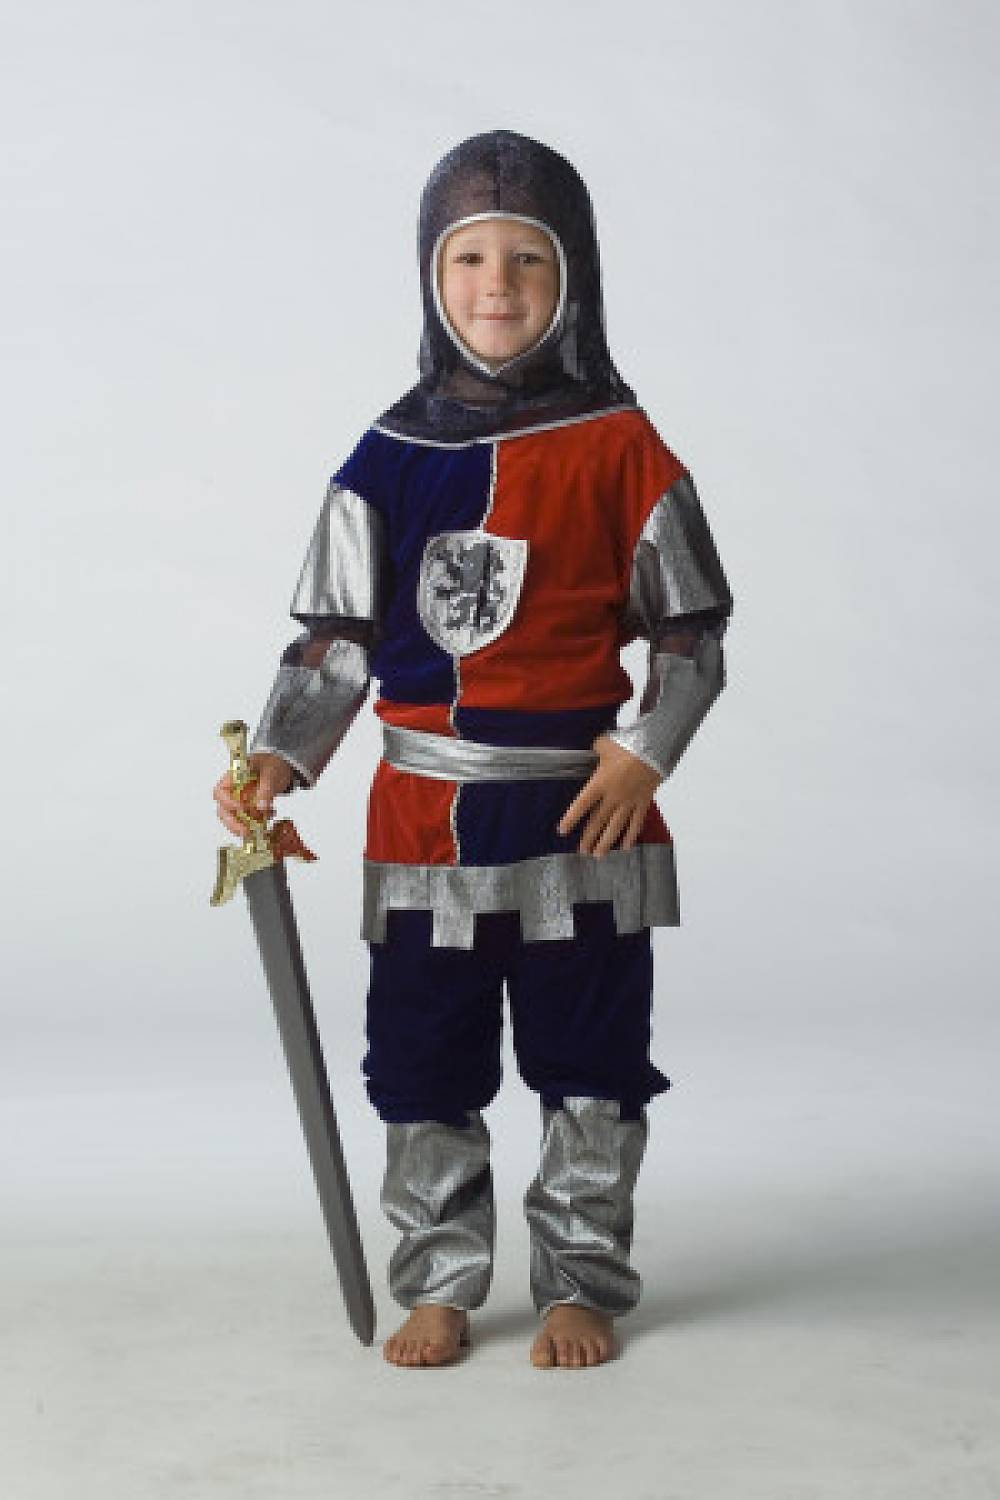 Carnival-costumes Children Knight Lionheart  sc 1 st  in the most foolish online fancy dress and accessory store & Carnival-costumes: Children: Knight Lionheart - Fancy dress